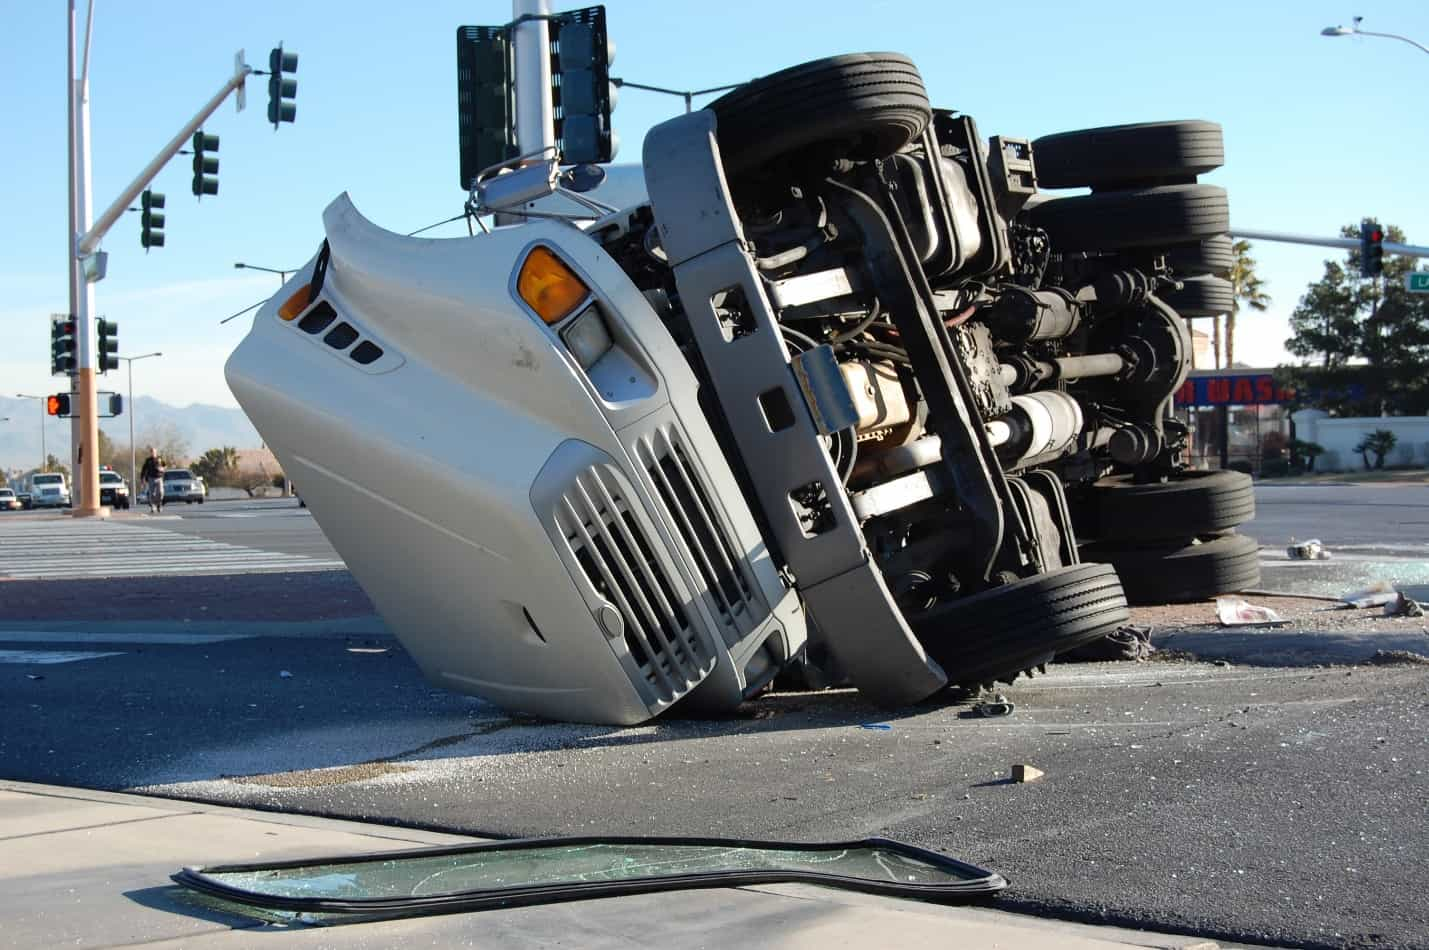 truck accident injury lawyers 3 - Middlesex County, NJ Truck Accident Lawyer